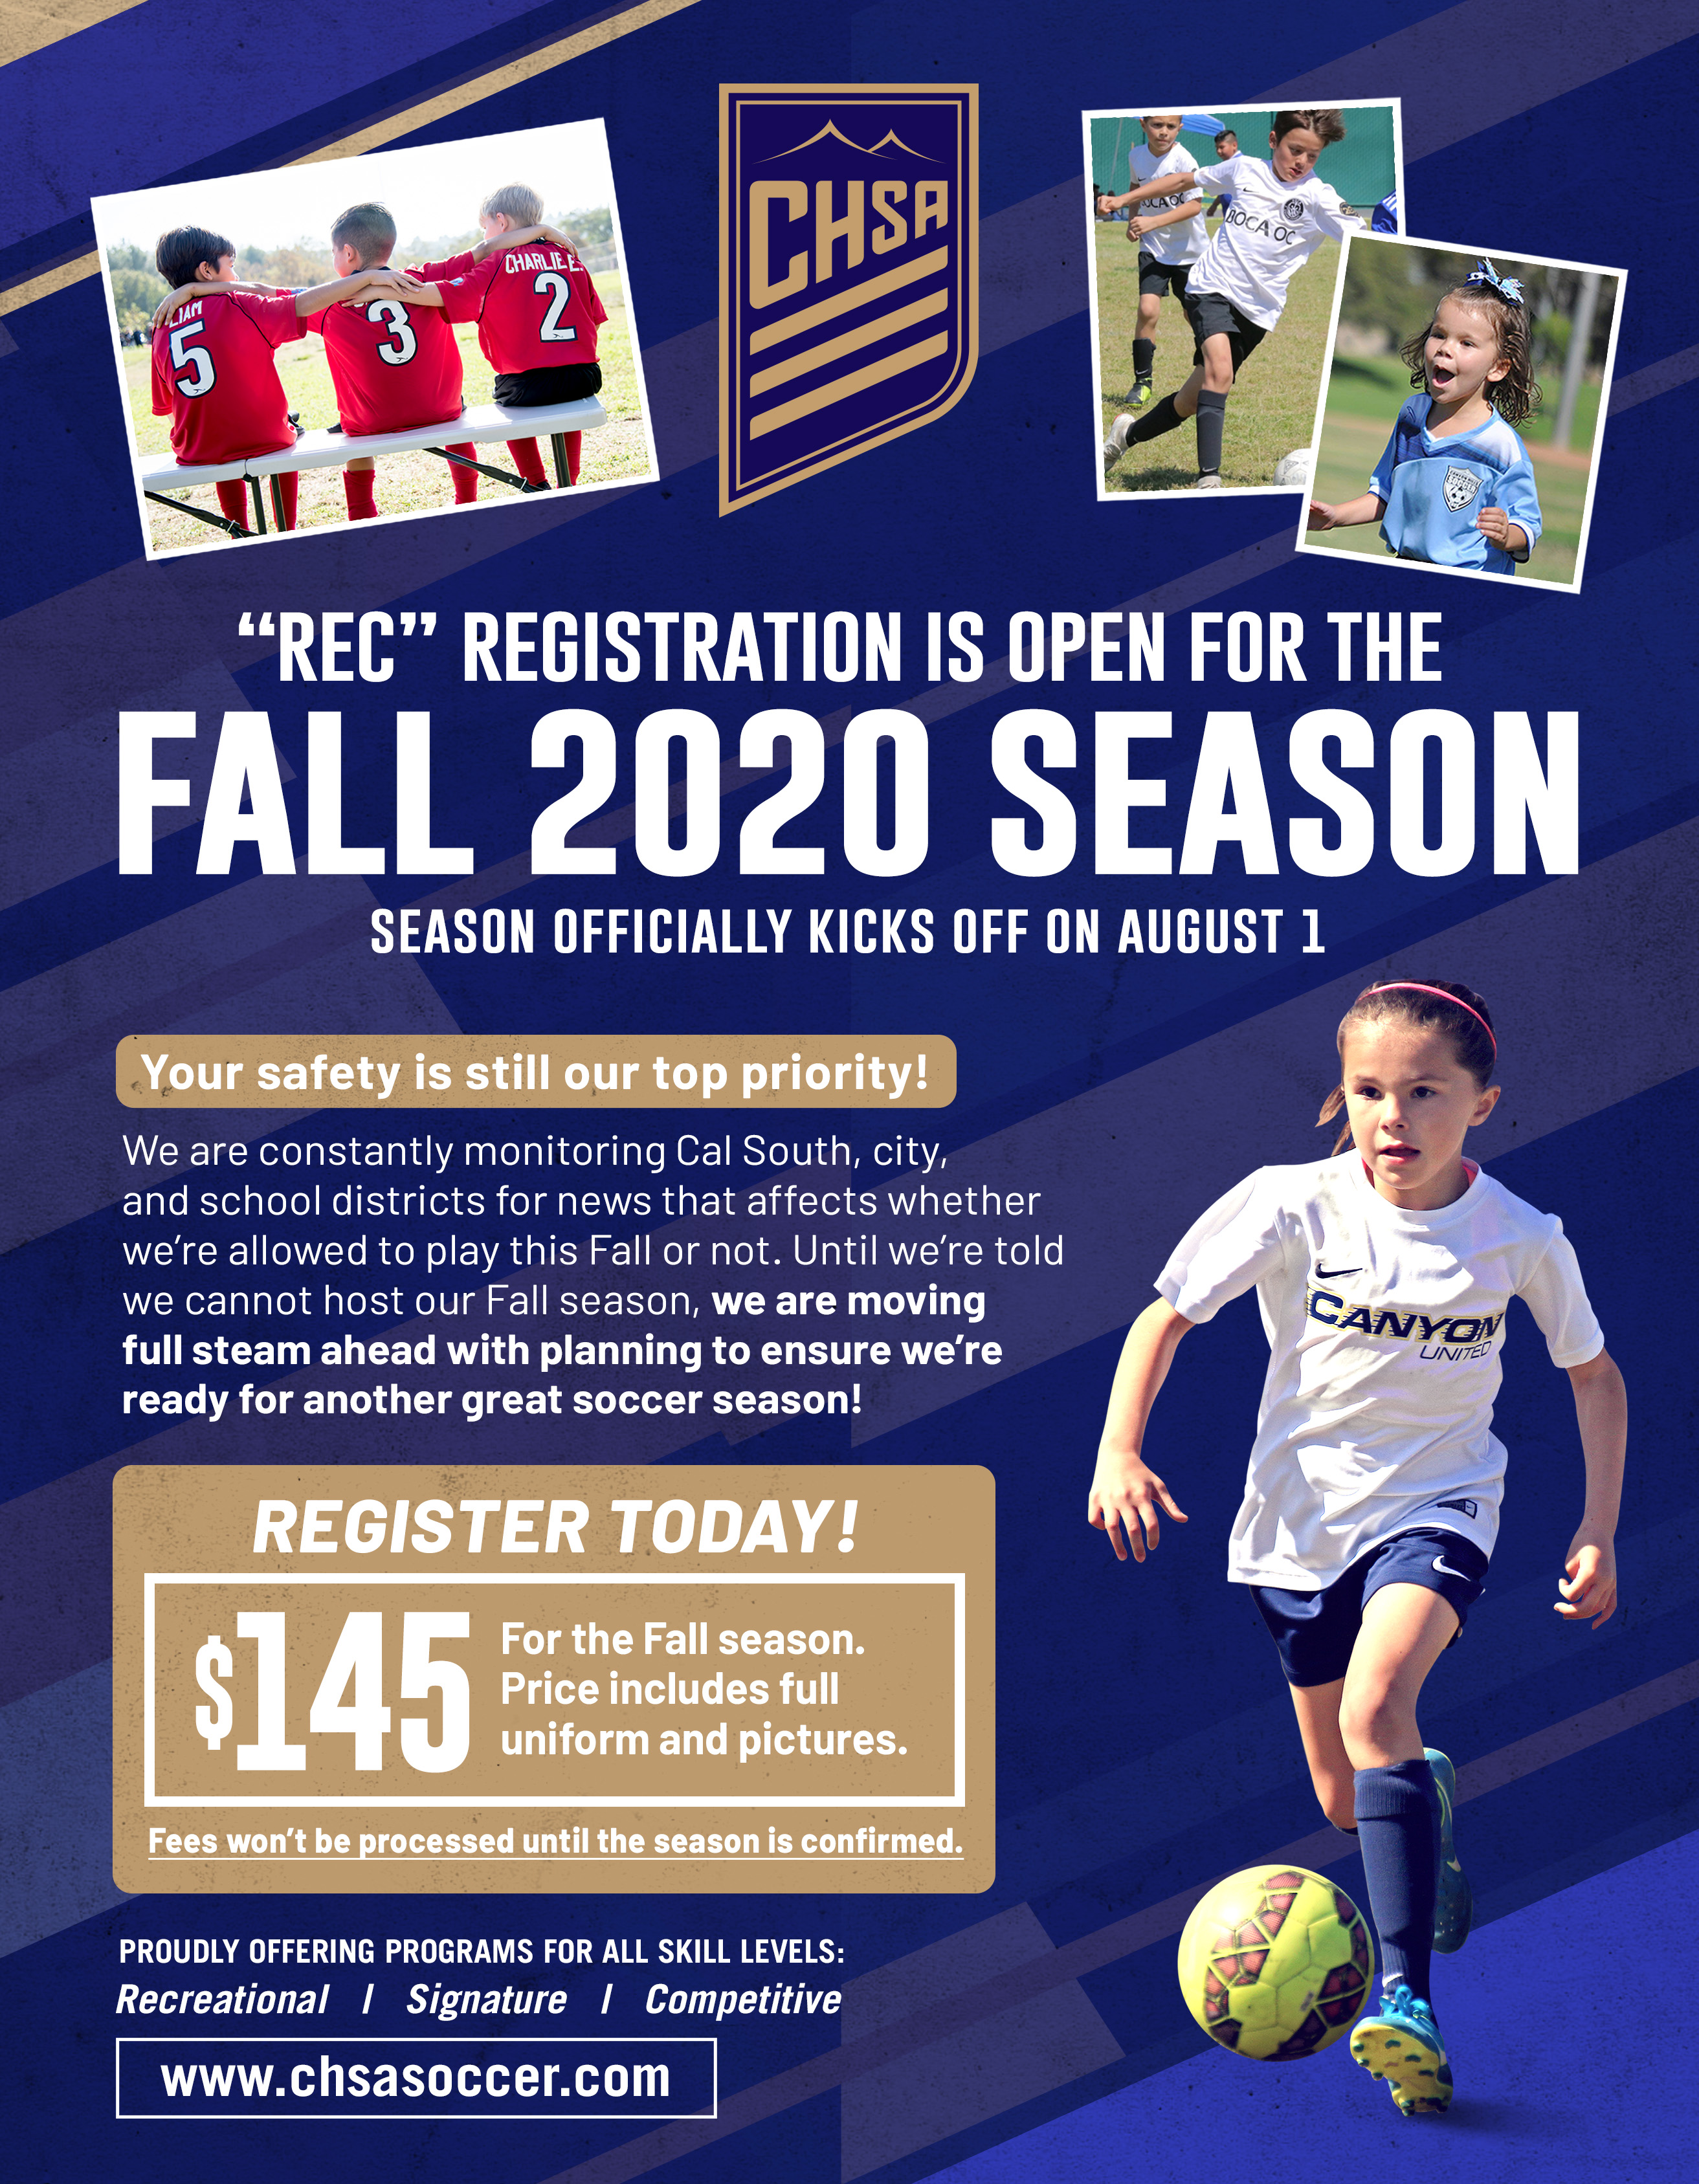 CHSA FALL 2020 REGISTRATION IS NOW OPEN!